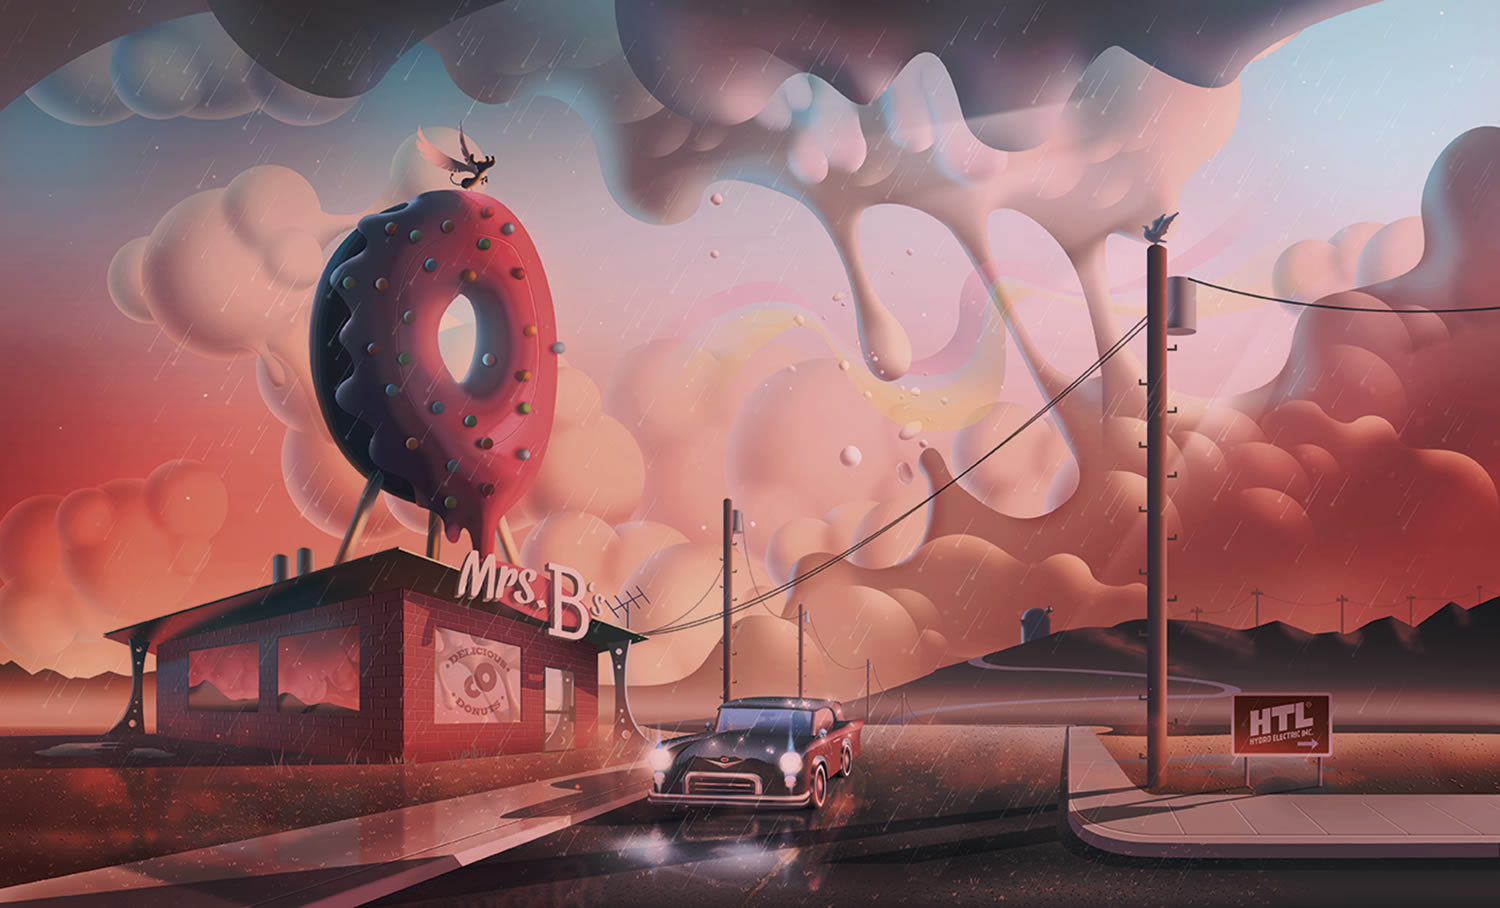 donut shop, and car, pink clouds